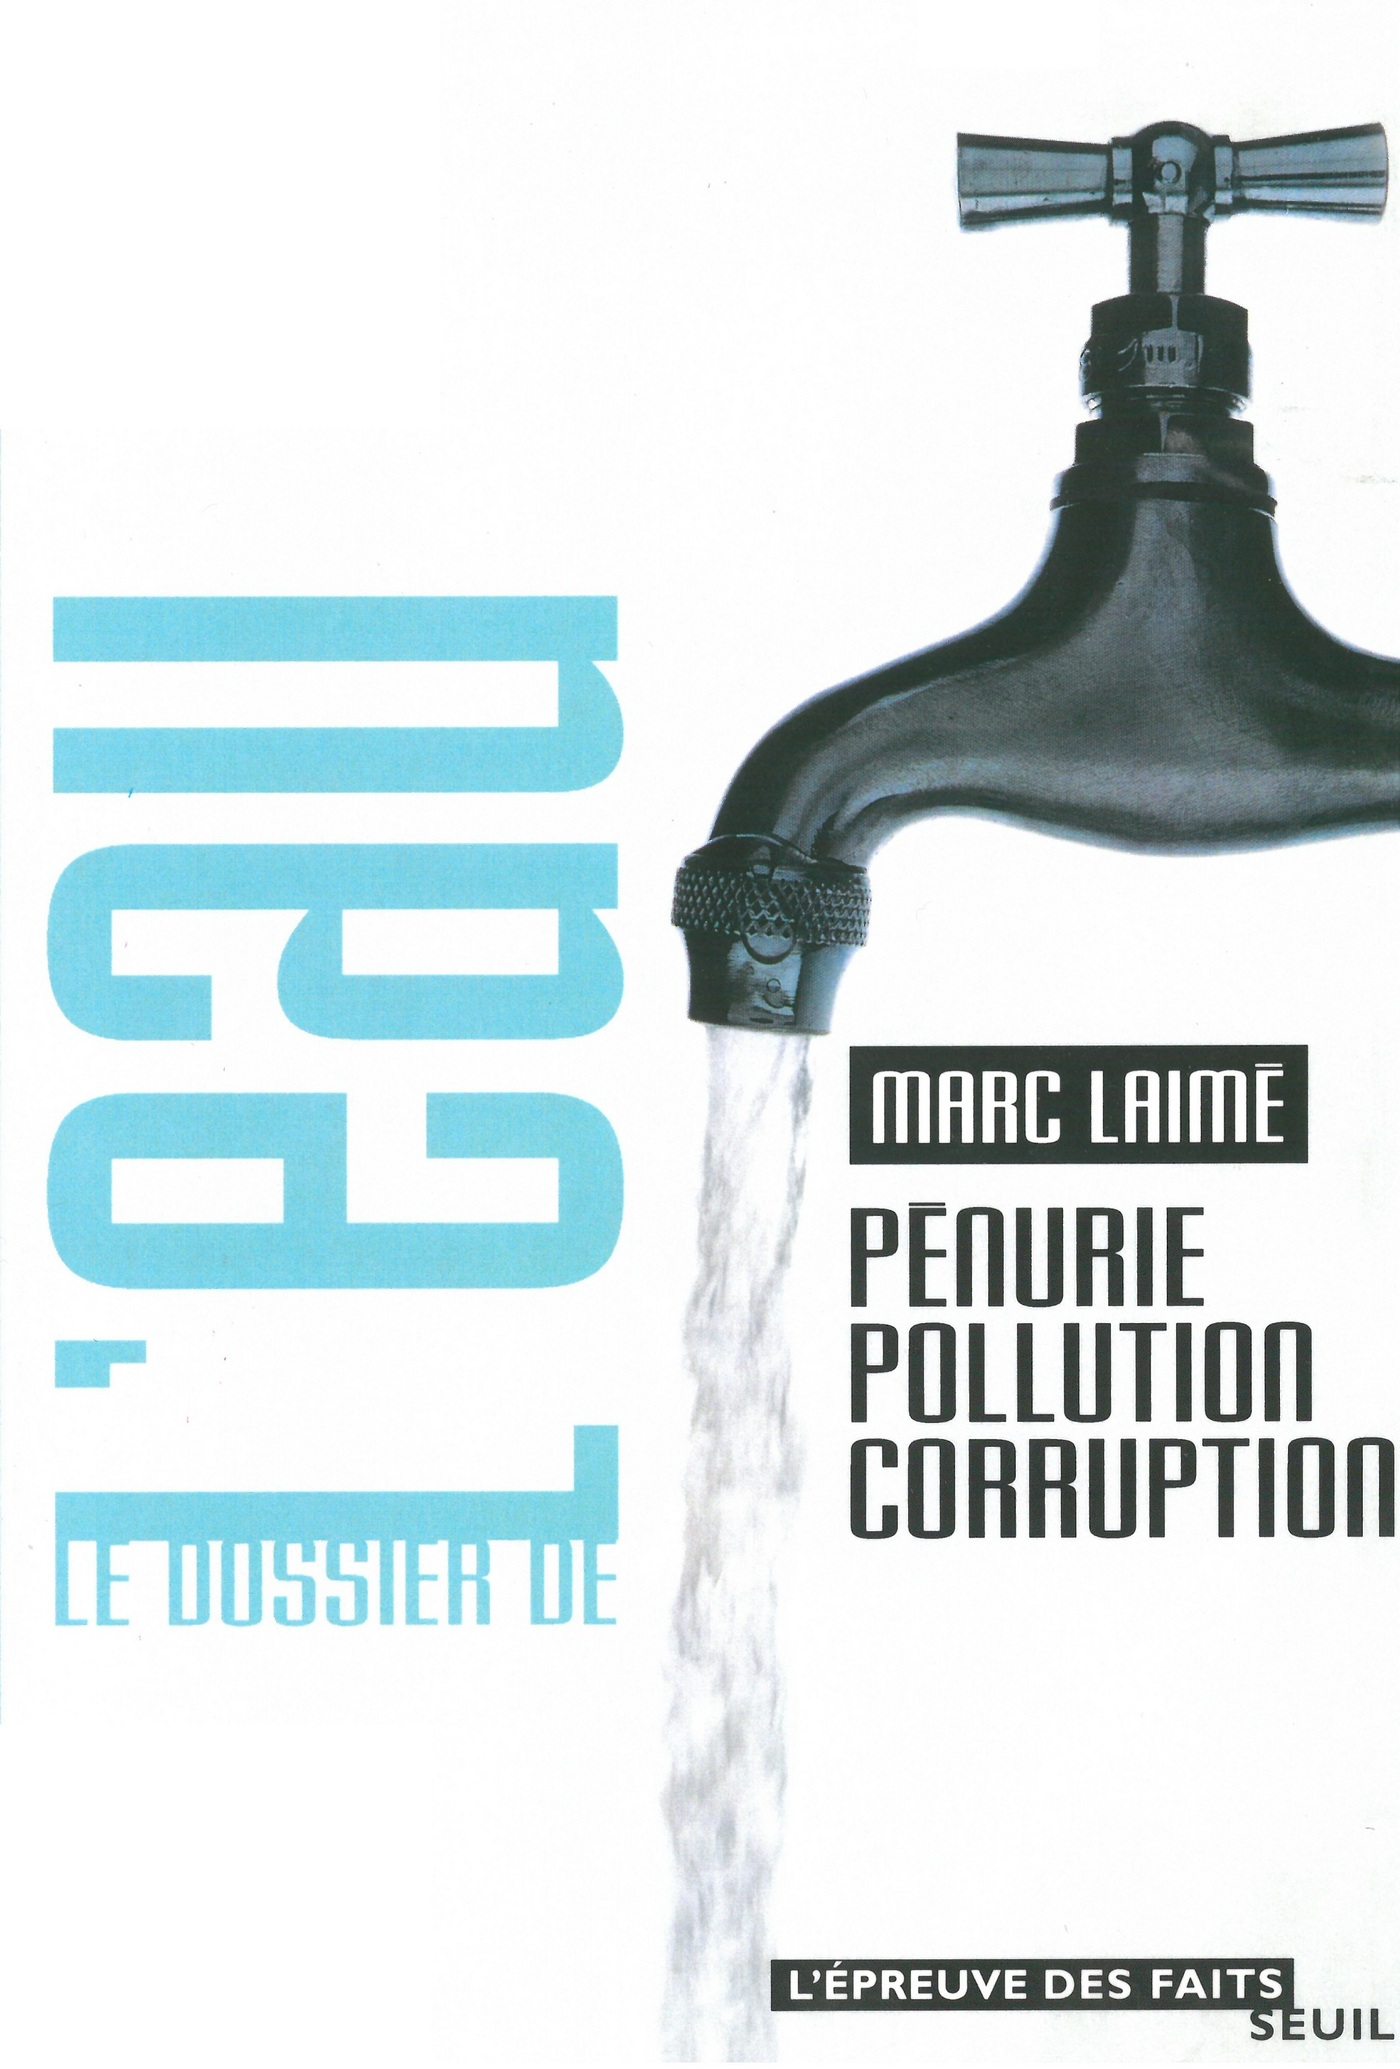 Le Dossier de l'eau. Pénurie, pollution, corruption